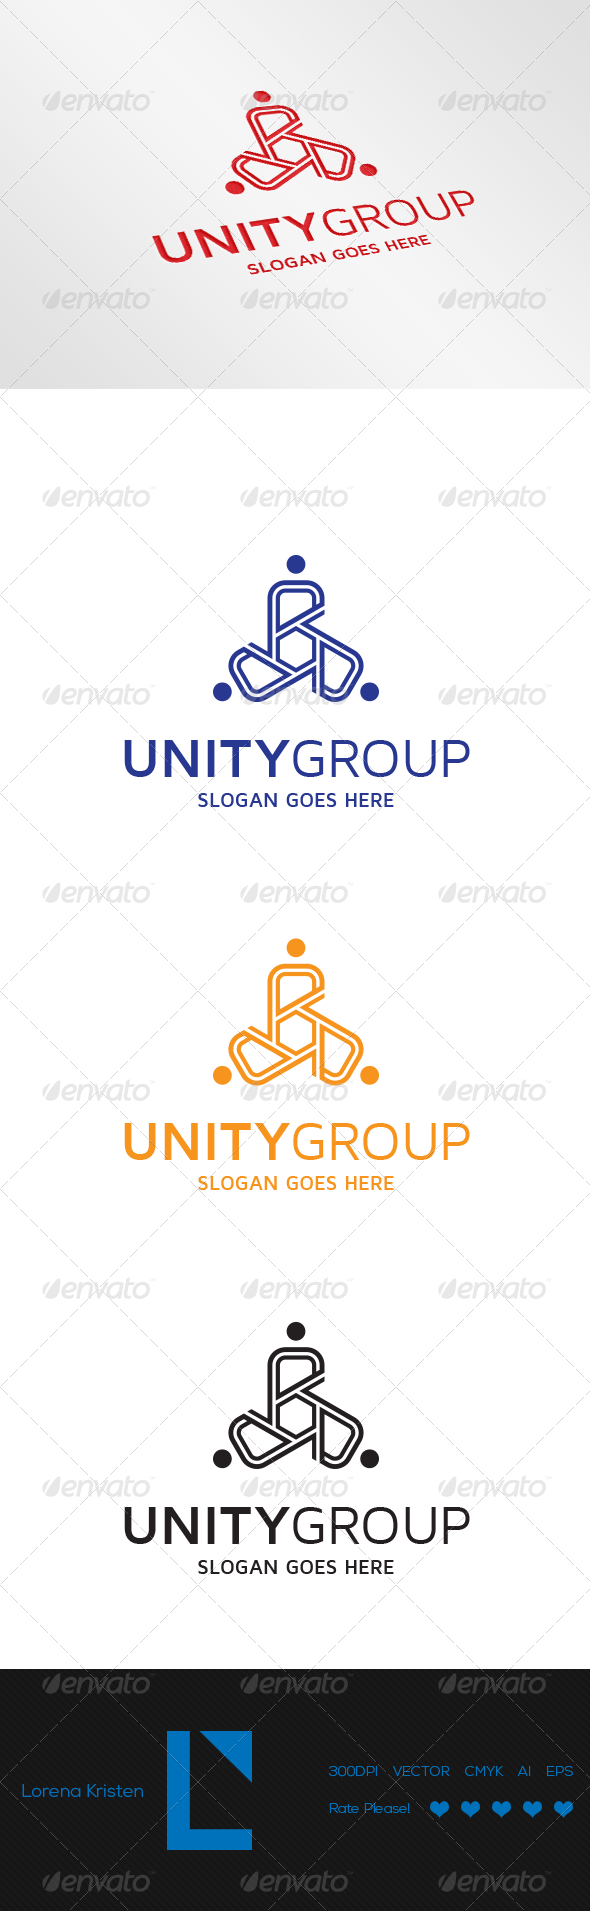 GraphicRiver Unity Group 6874762